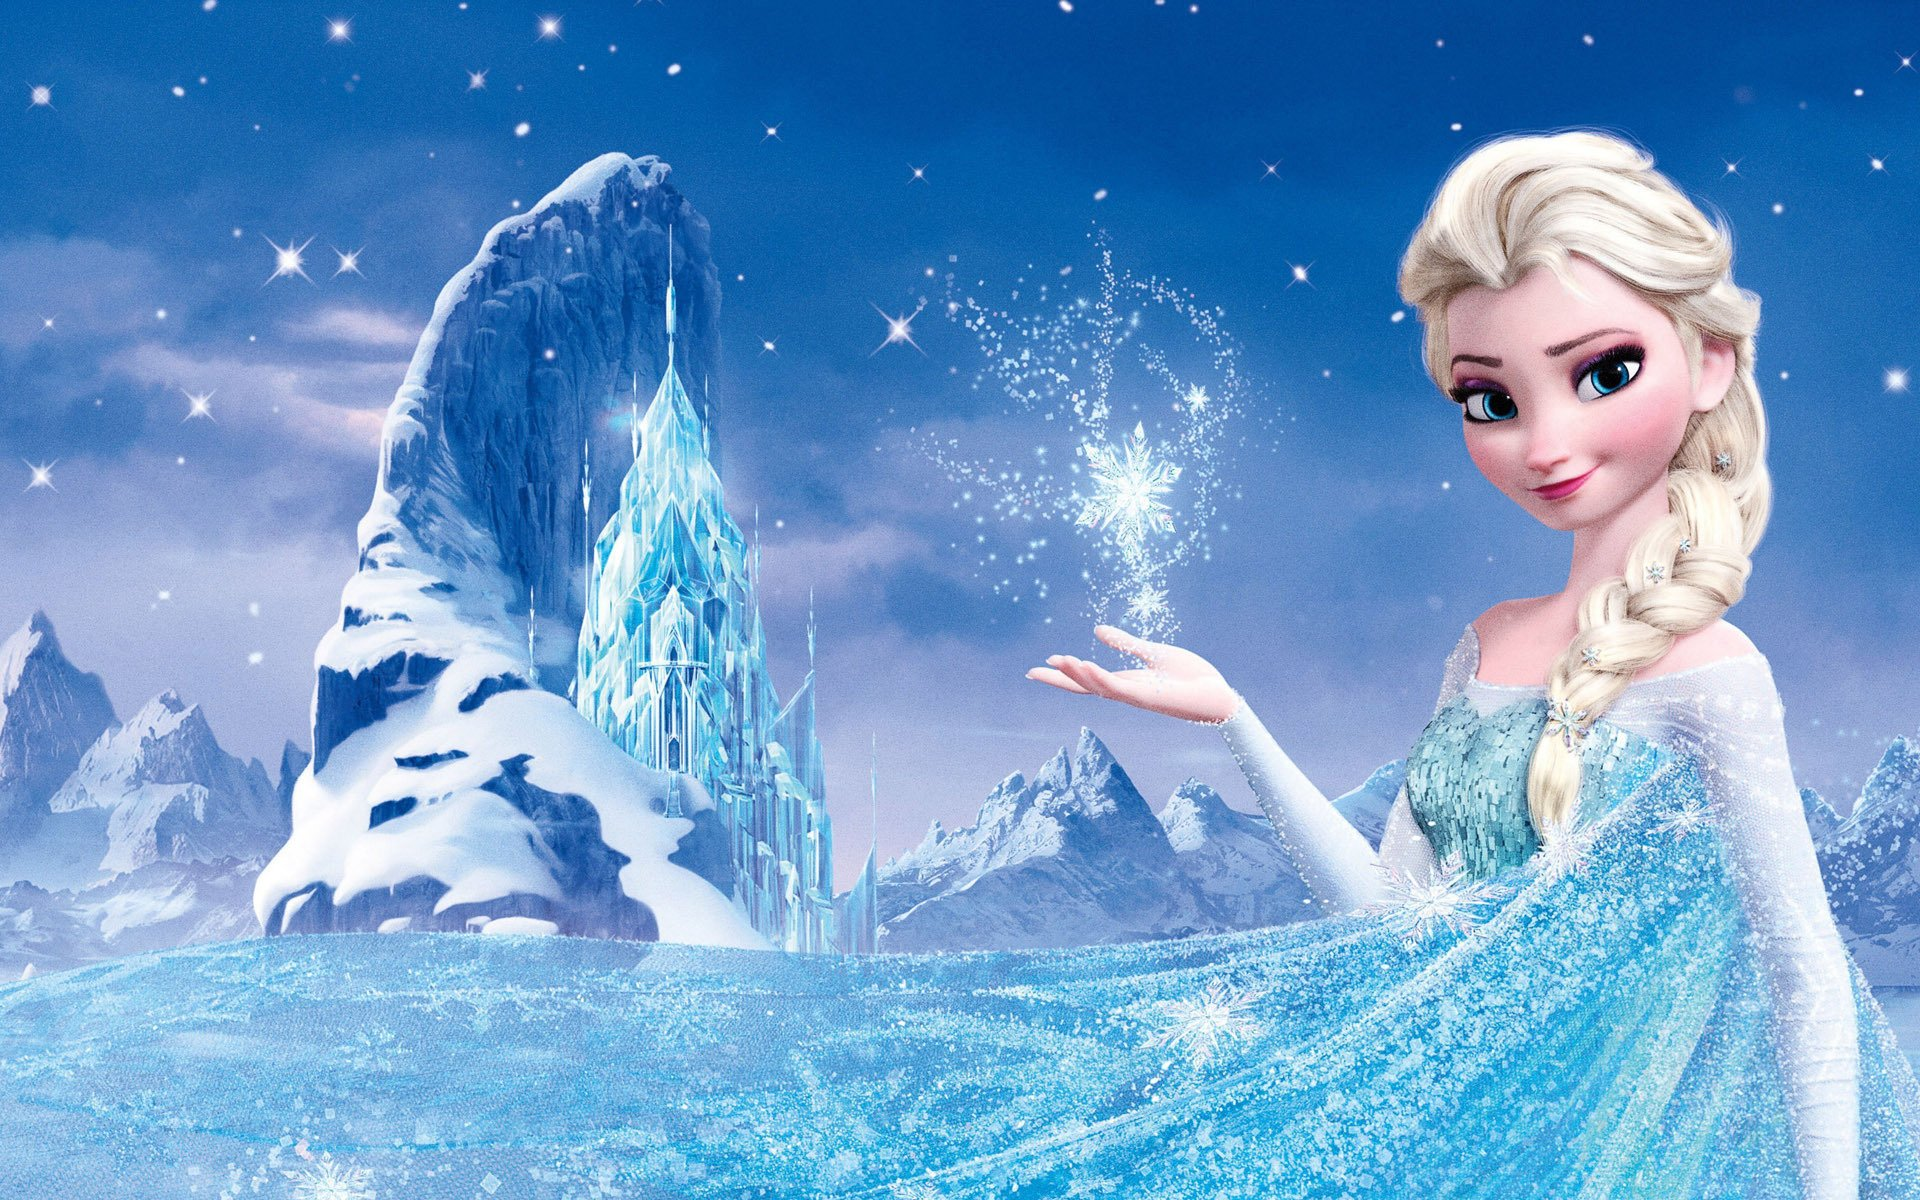 Frozen vs The Snow Queen Disneyfied or Disney tried 1920x1200